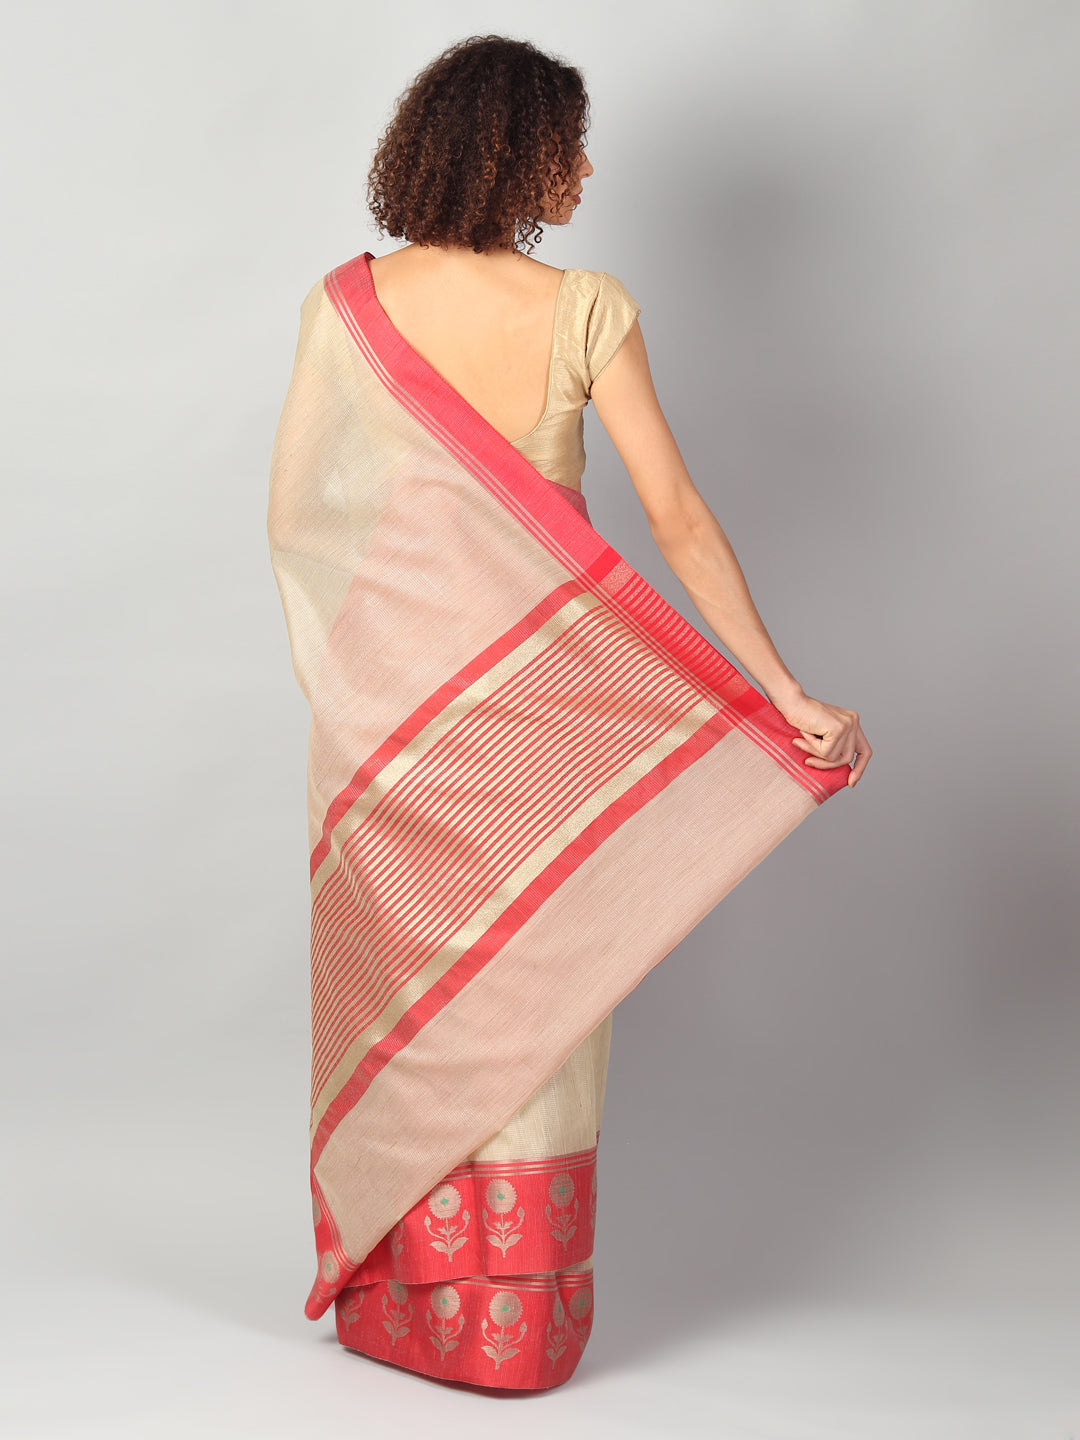 Zari kota in cream/beige with red border